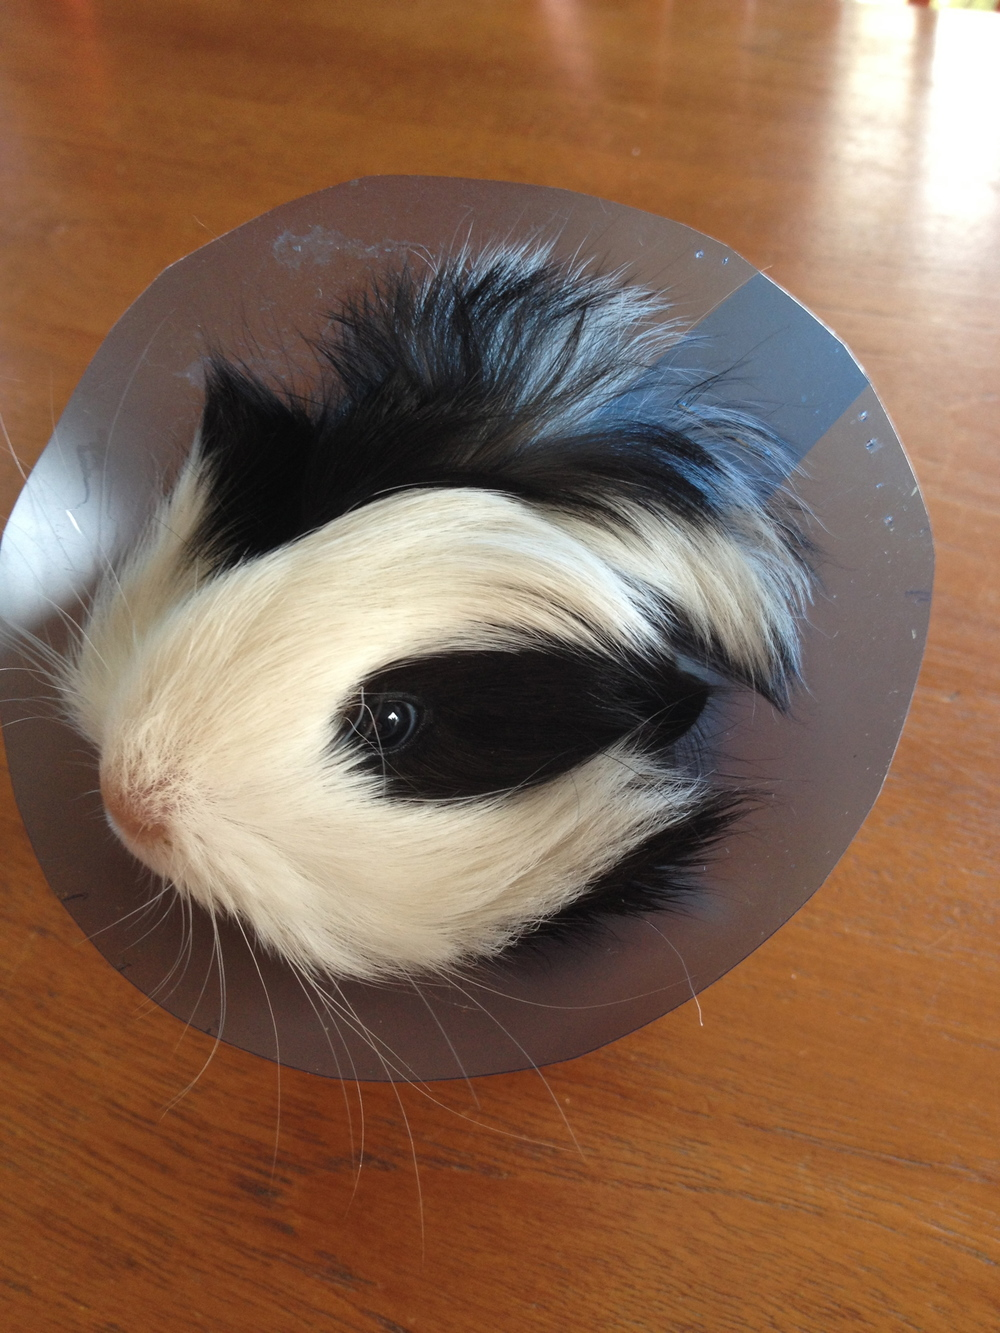 Gah! The cone of shame.